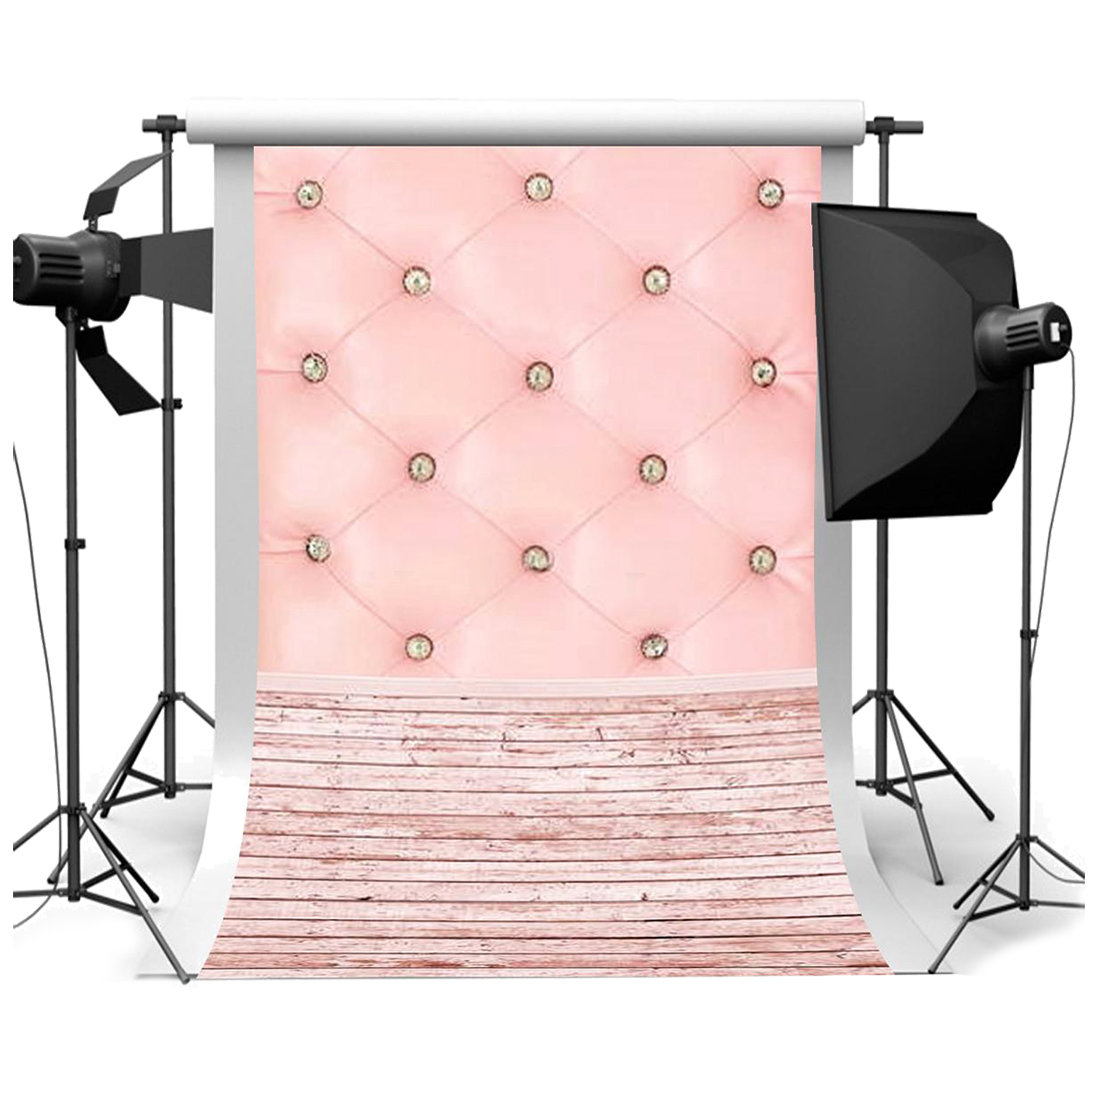 Top Deals 3x5FT Vinyl Photography Backdrop Wall Photo Background pink